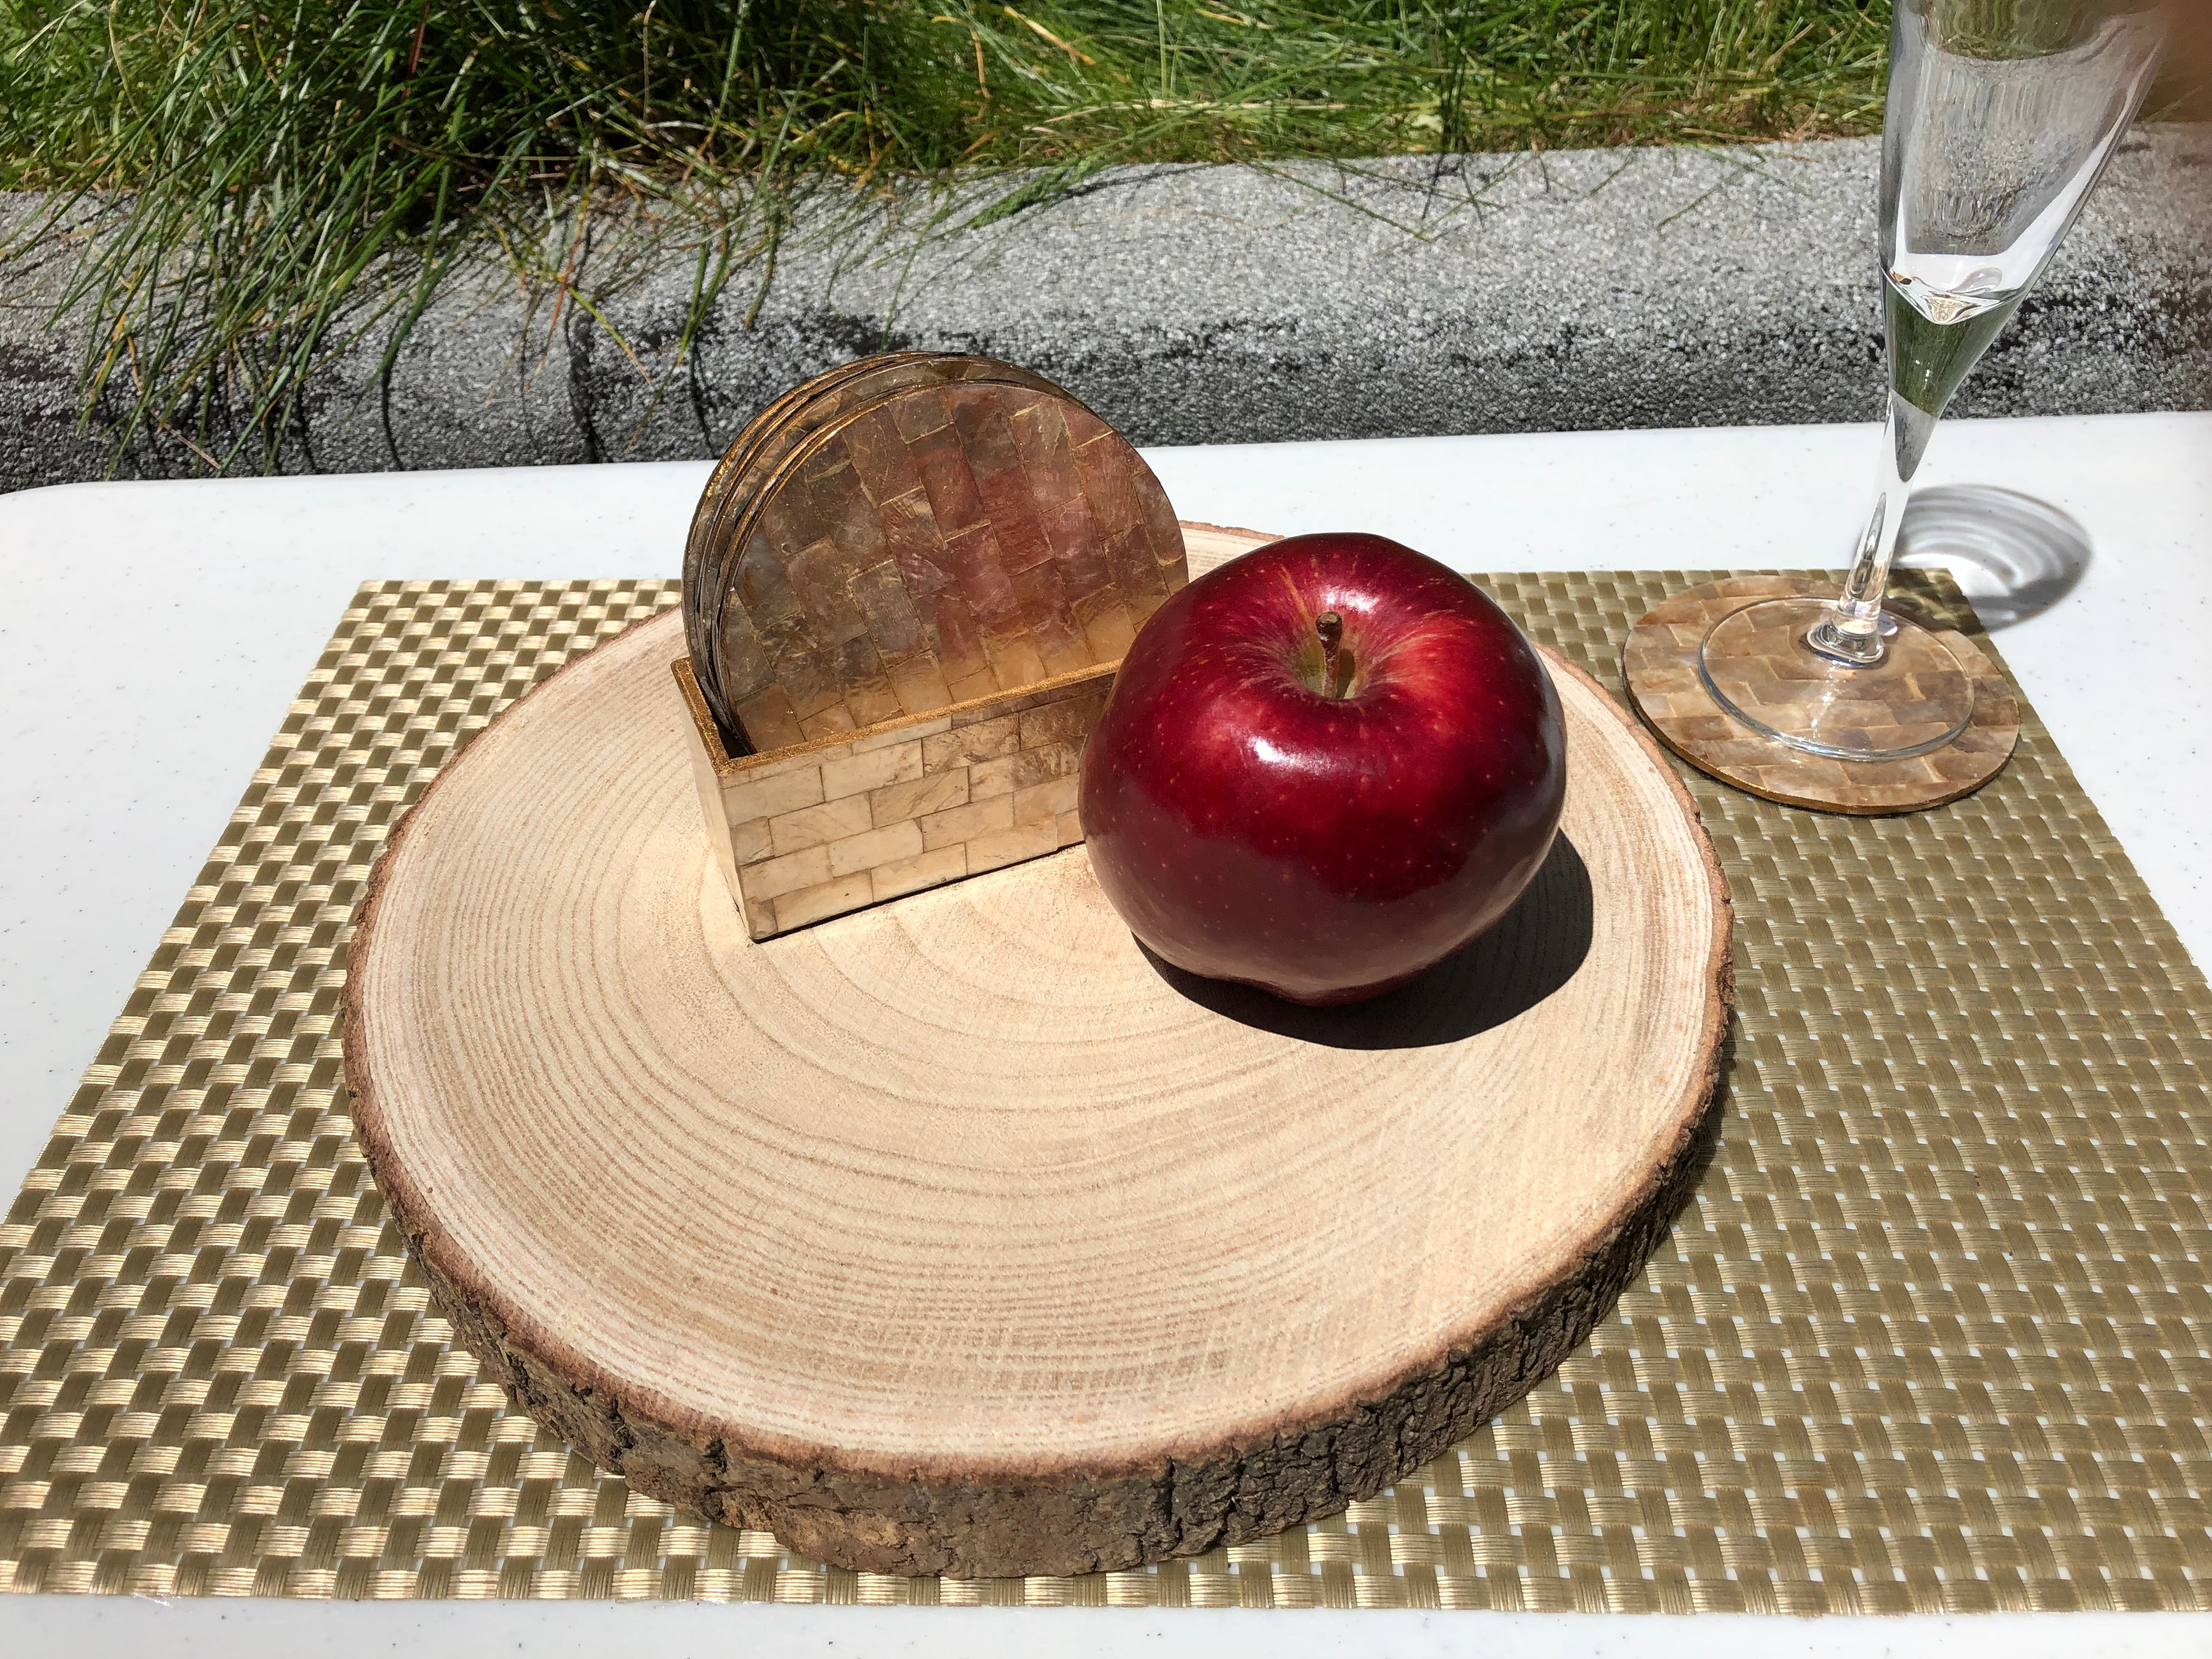 Placemats (Set of 4) - add style to your dining table